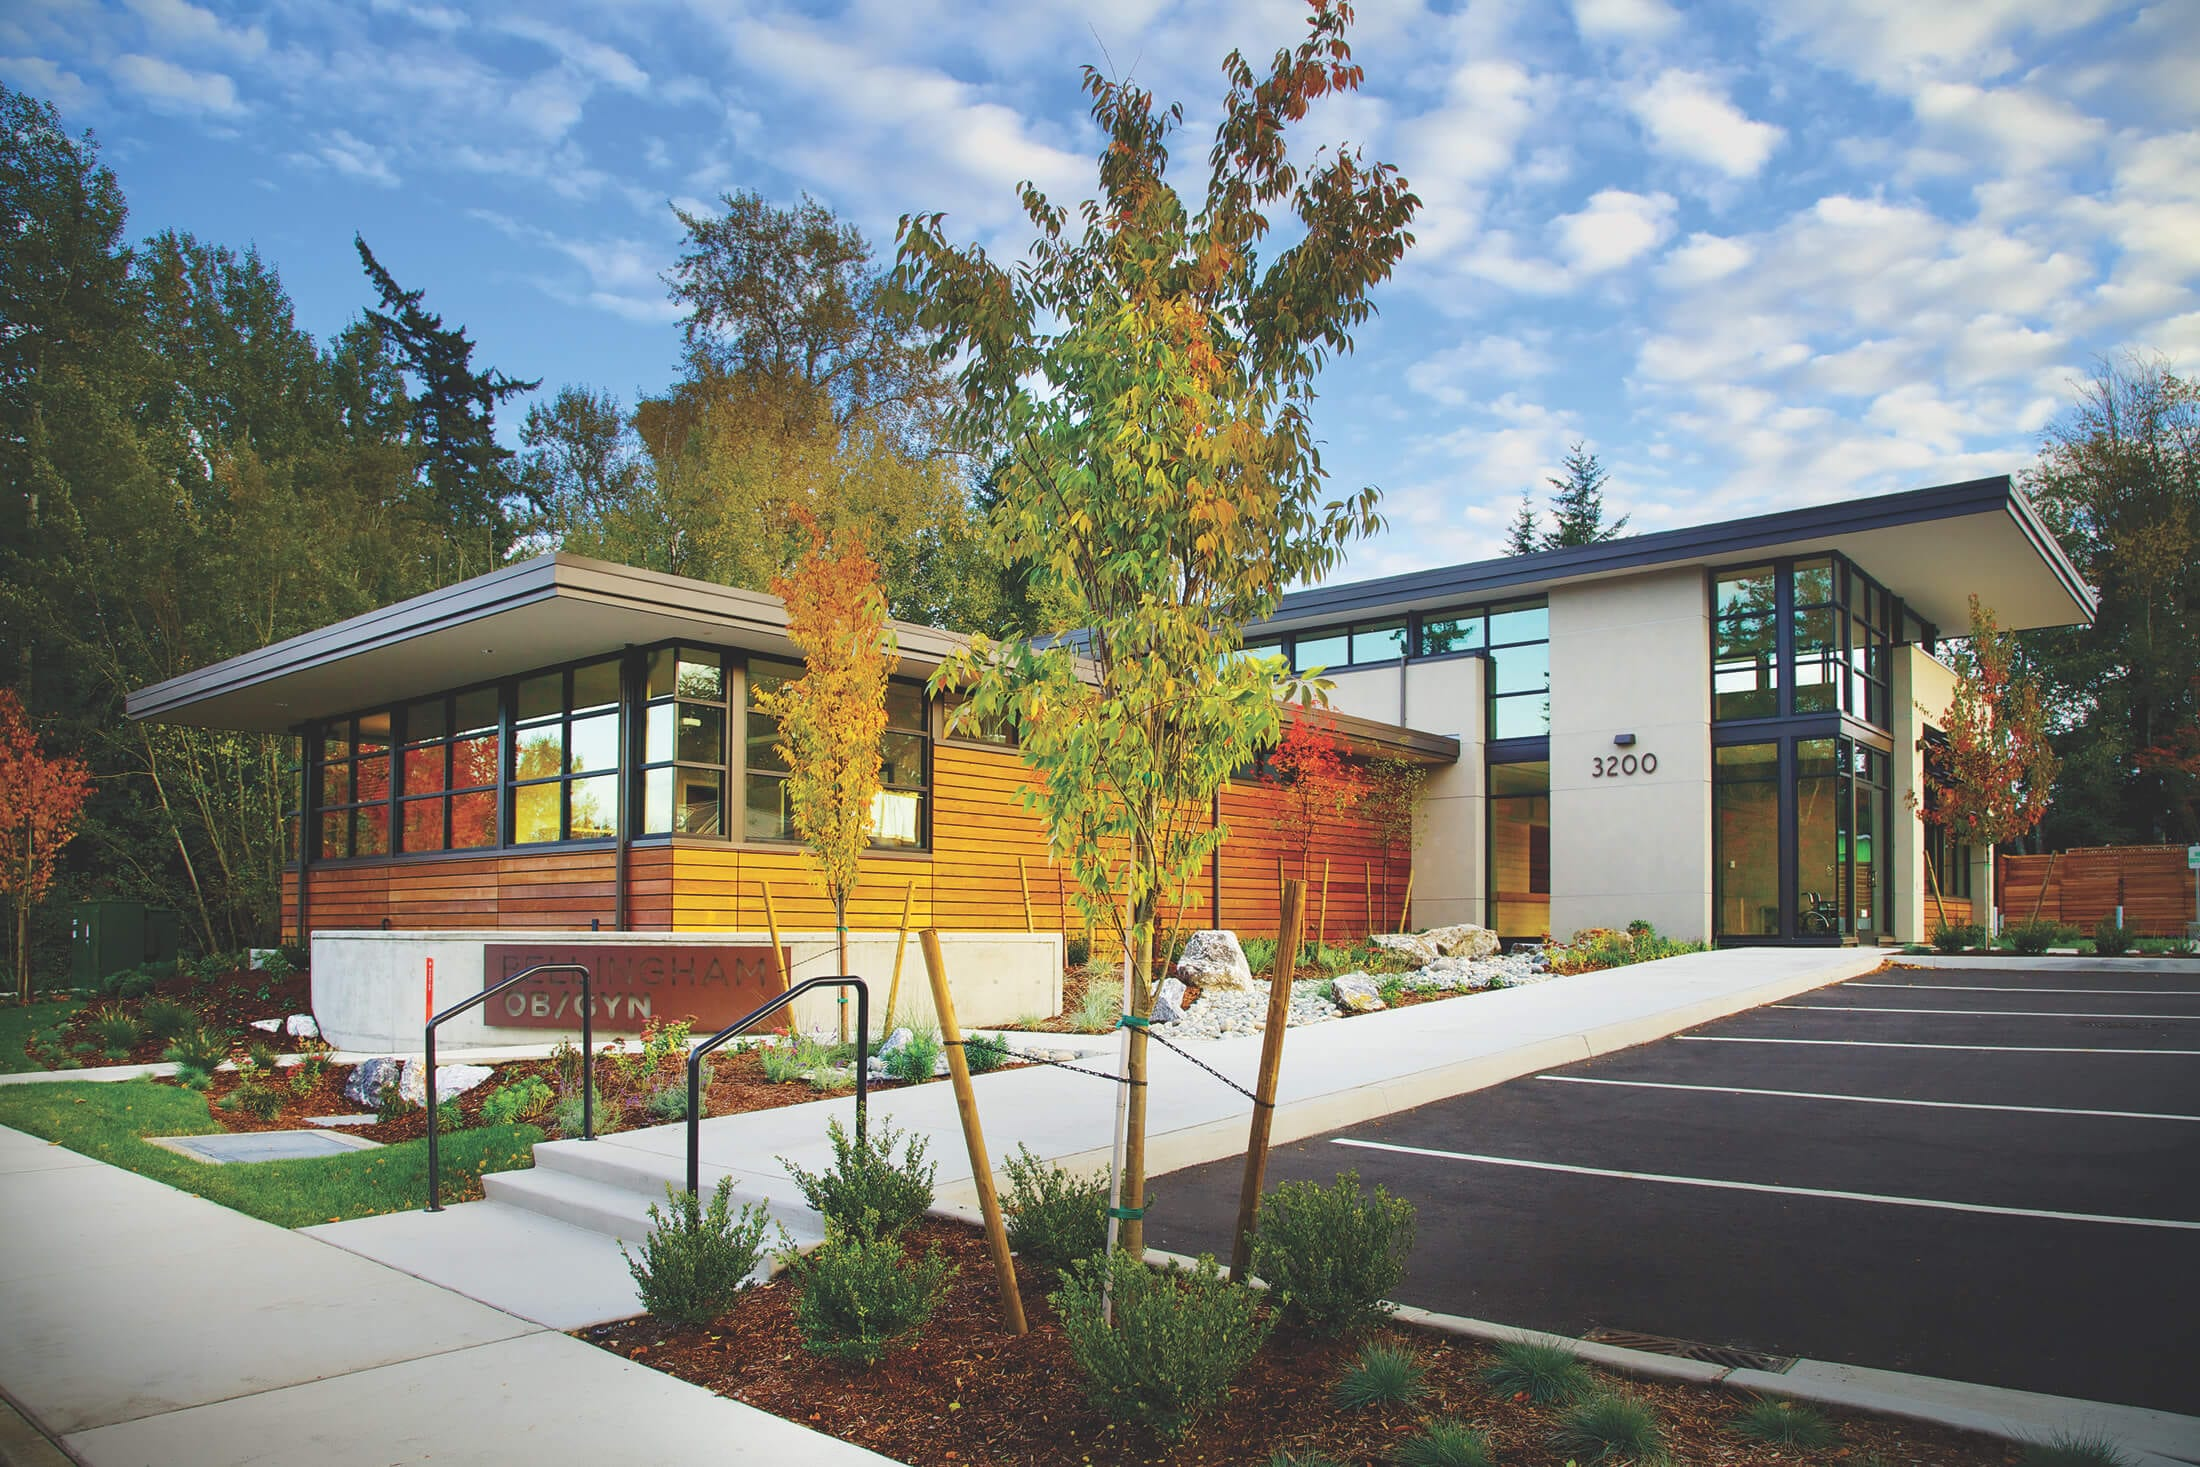 Expand Bellingham OBGYN Exterior